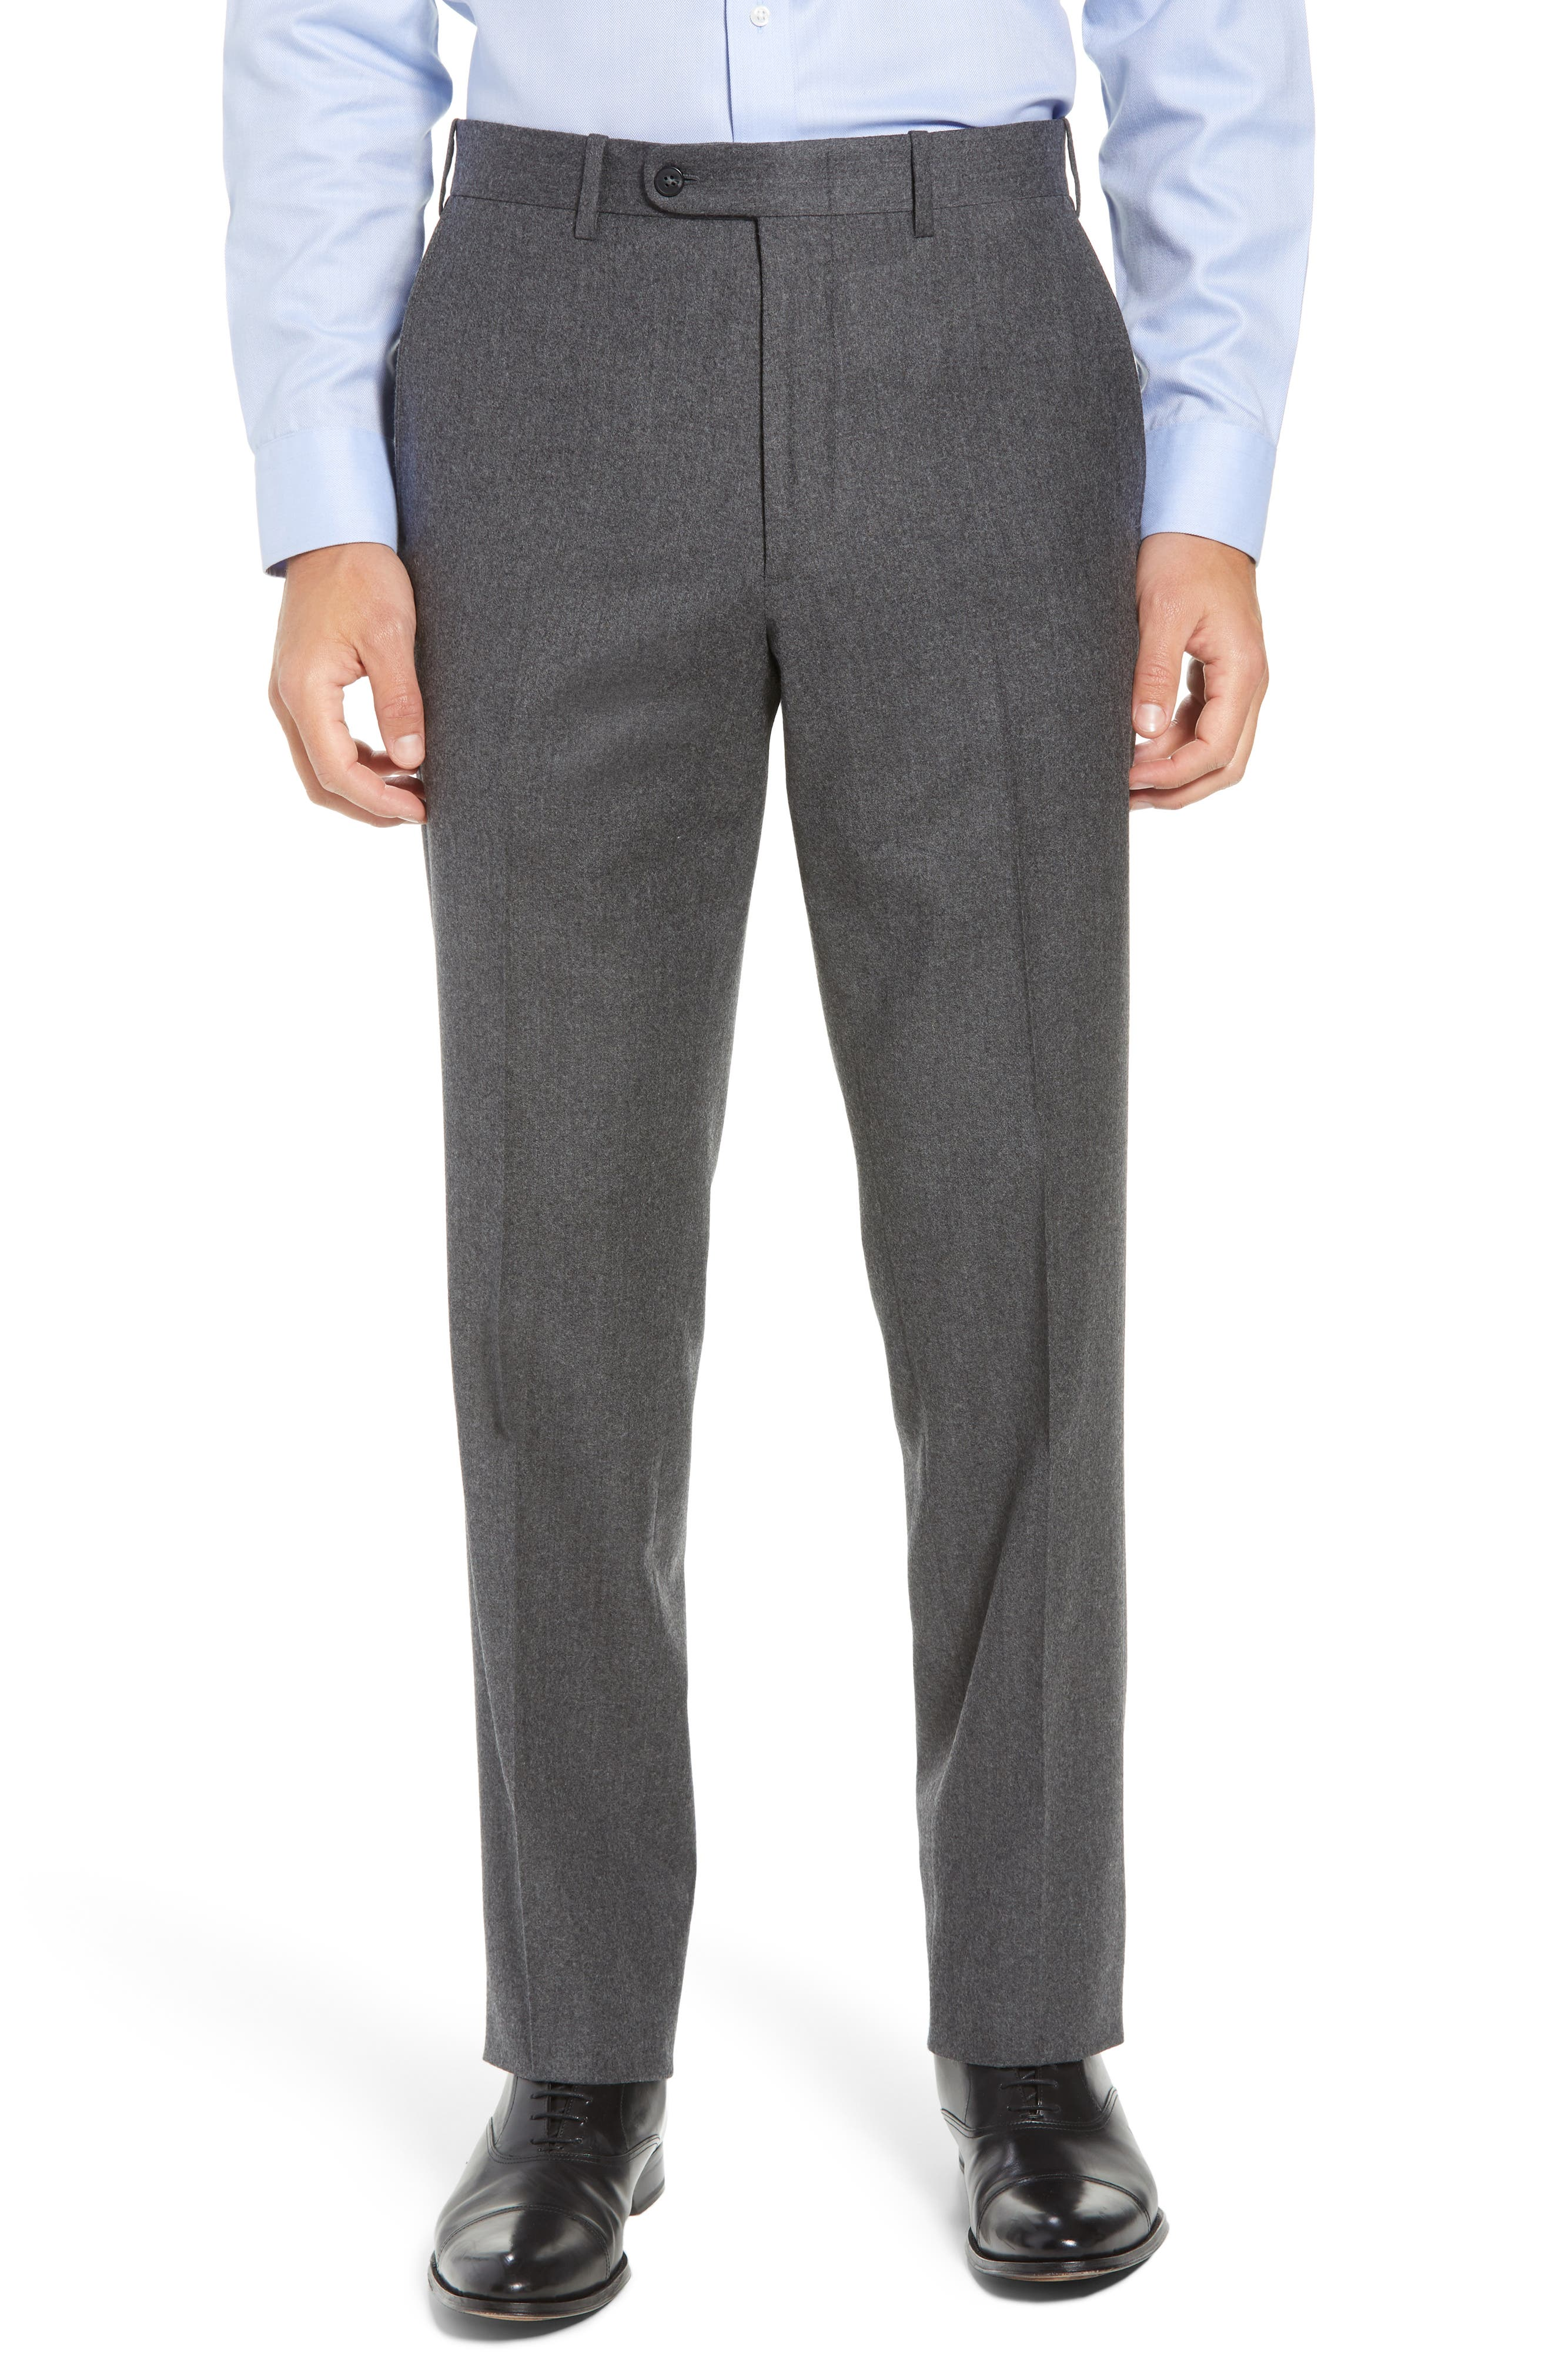 Torino Traditional Fit Flat Front Solid Wool & Cashmere Trousers,                         Main,                         color, MID GREY